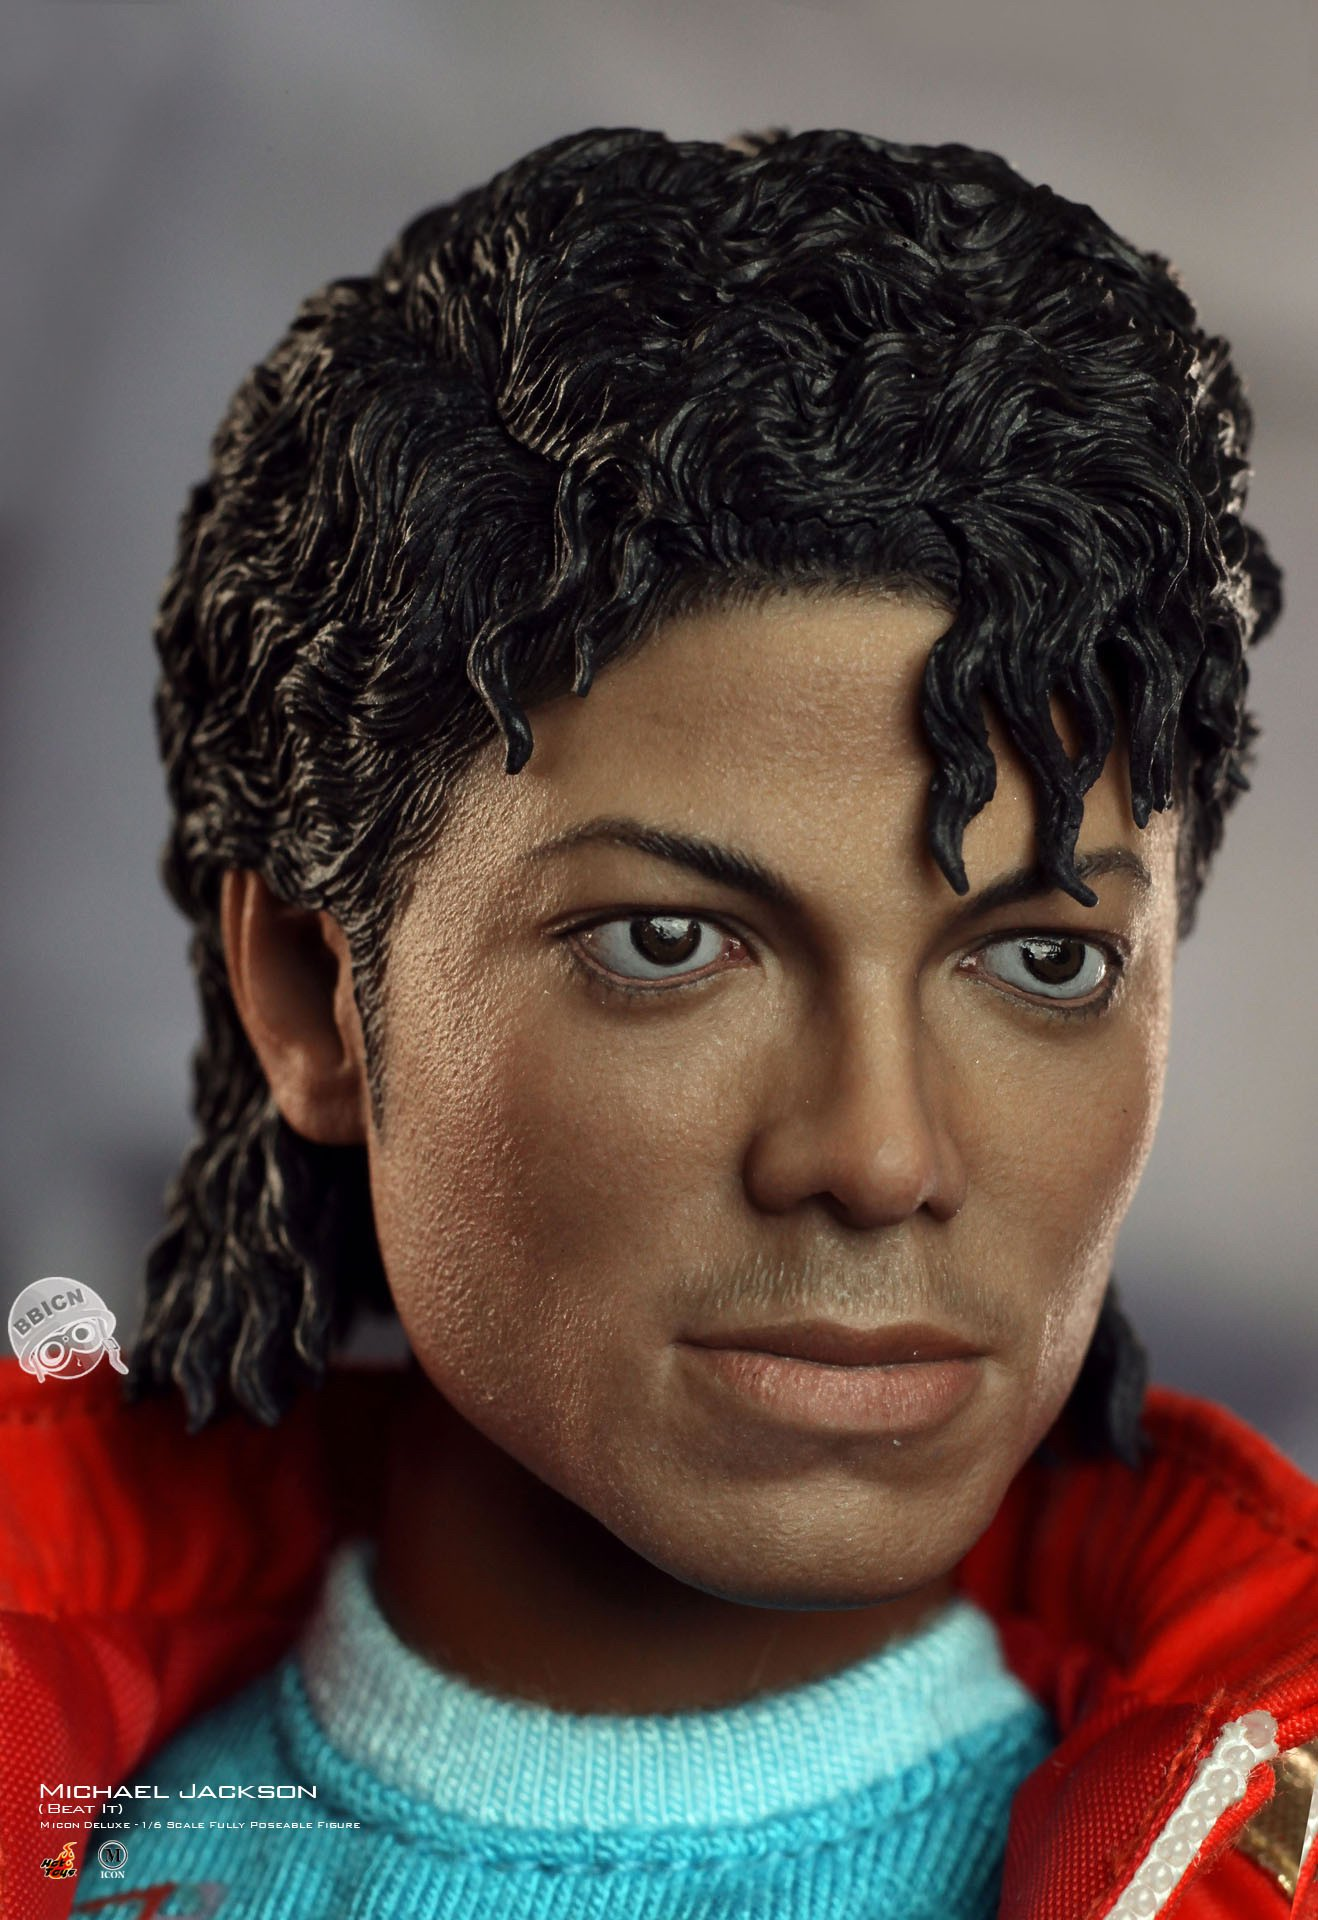 [NUOVE FOTO] Nuova Action Figure di Beat It - Pagina 2 093914pl24dcpbzbdmpq6c